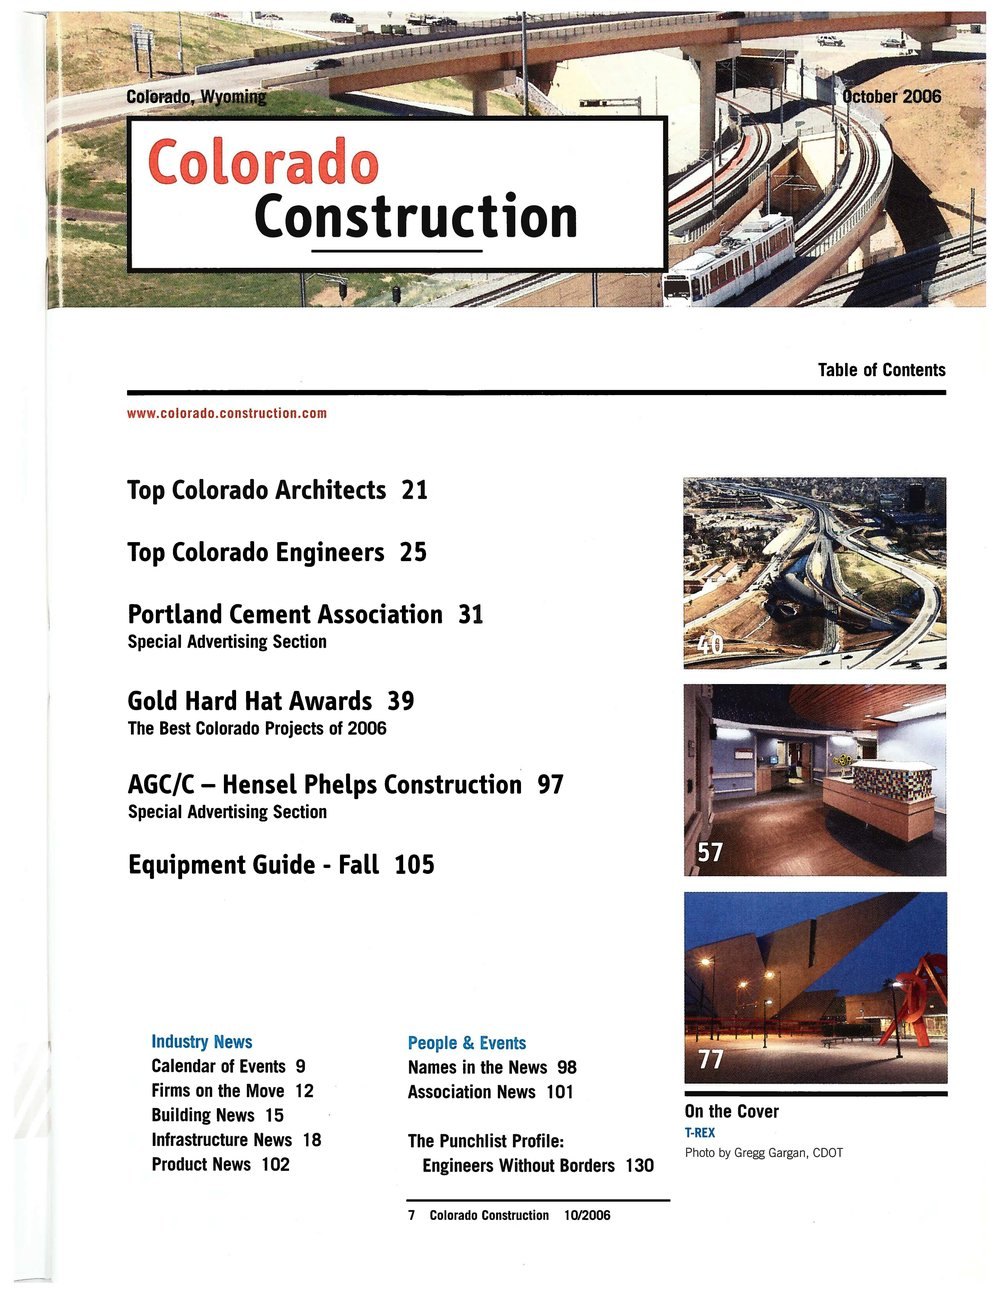 TCP_Awards_Colorado Construction 2006 Gold Hard Hat Award_Page_2.jpg